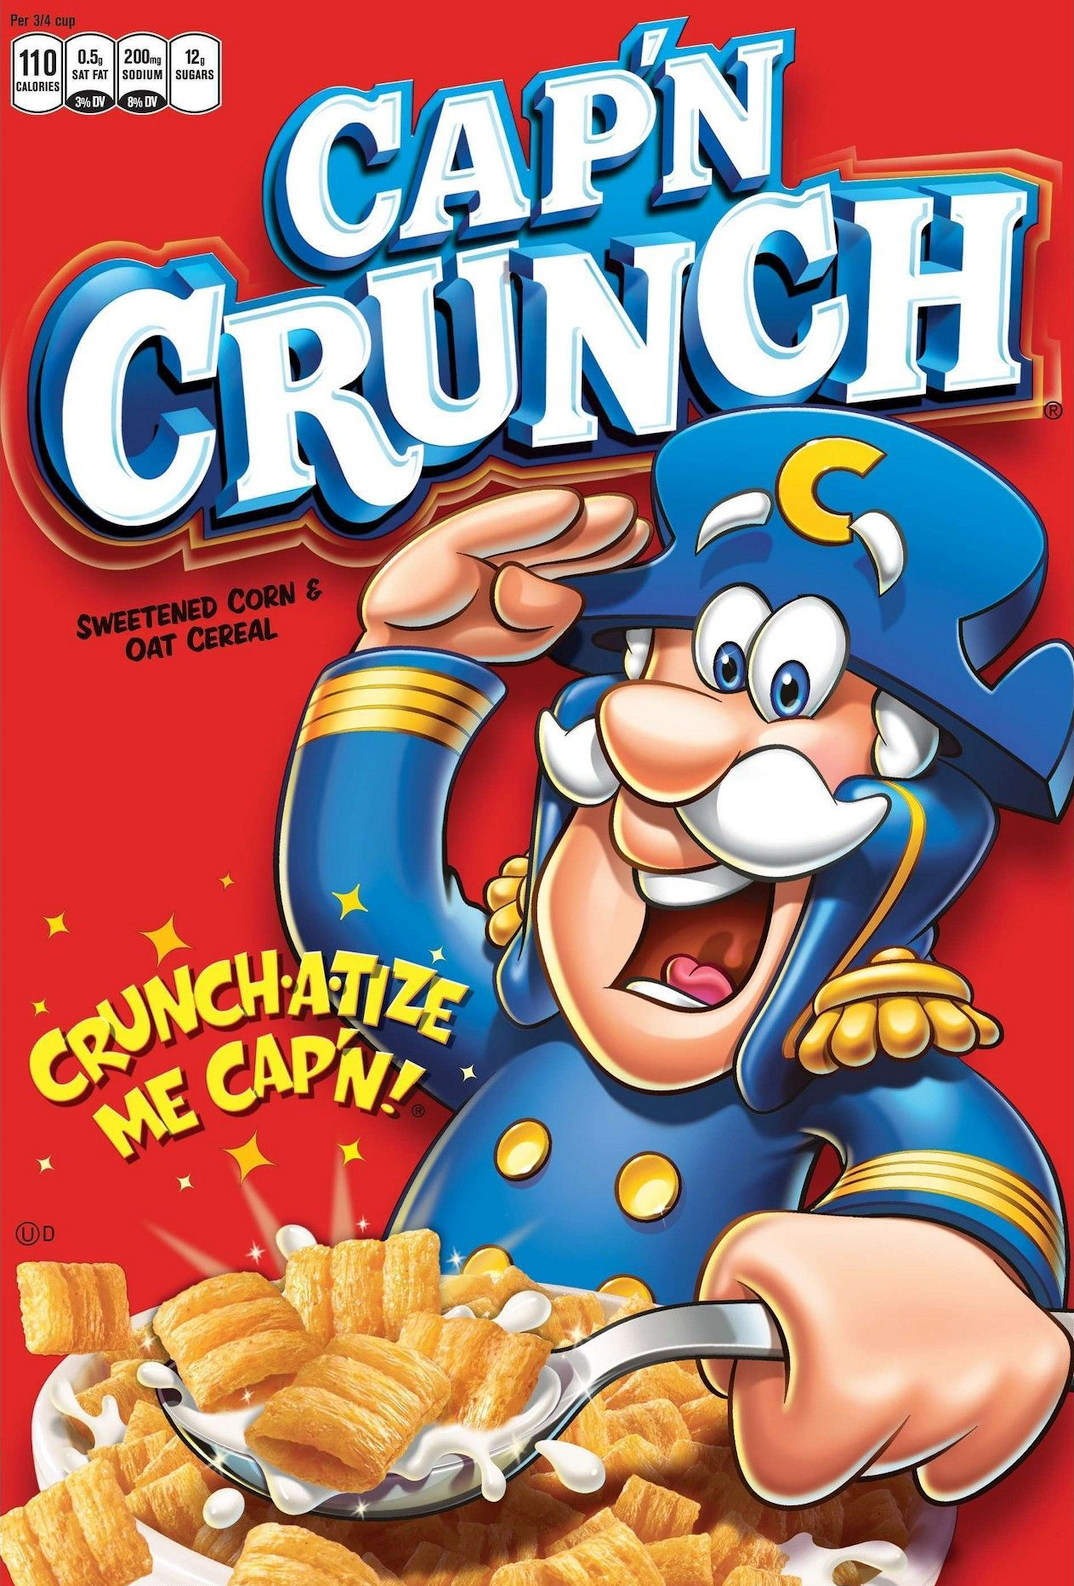 the front of a box of Cap'n Crunch